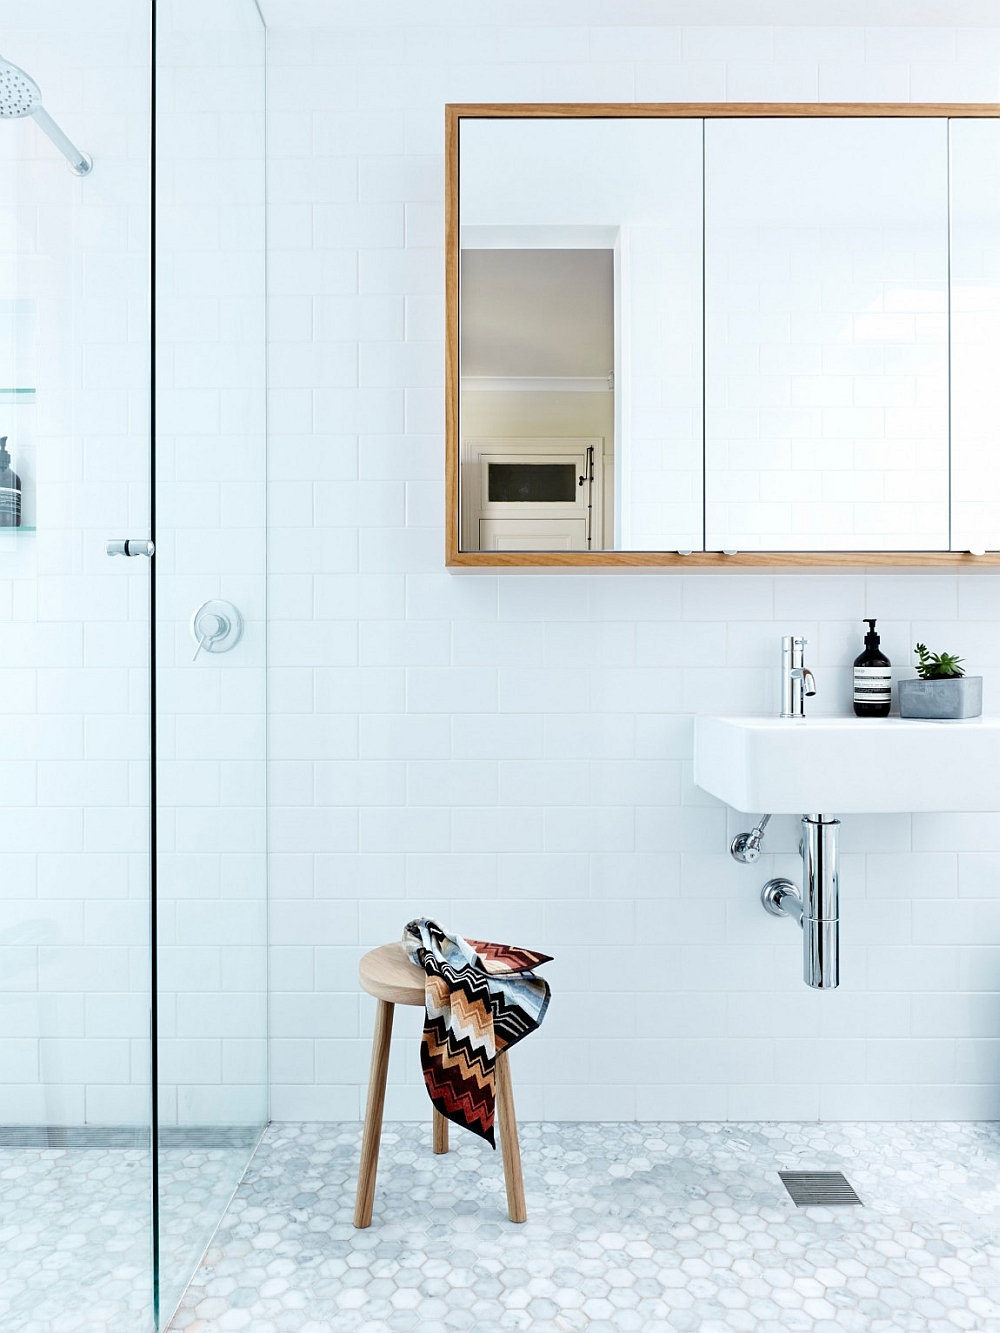 Simple wooden accents bring class and warmth to the contemporary bathroom